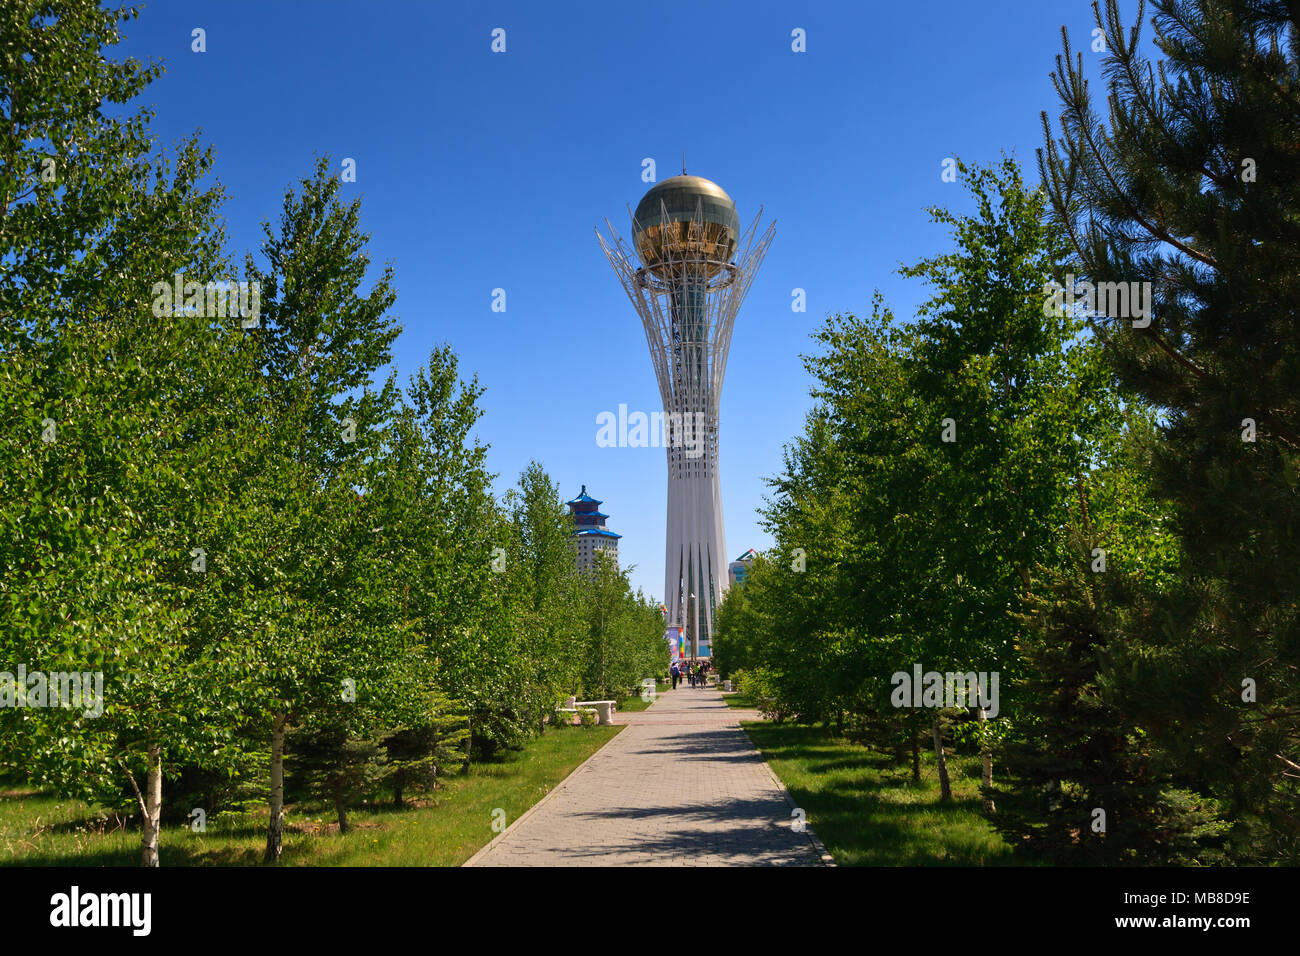 Bayterek Tower, a monument and observation tower in Astana, the capital city of Kazakhstan. Stock Photo